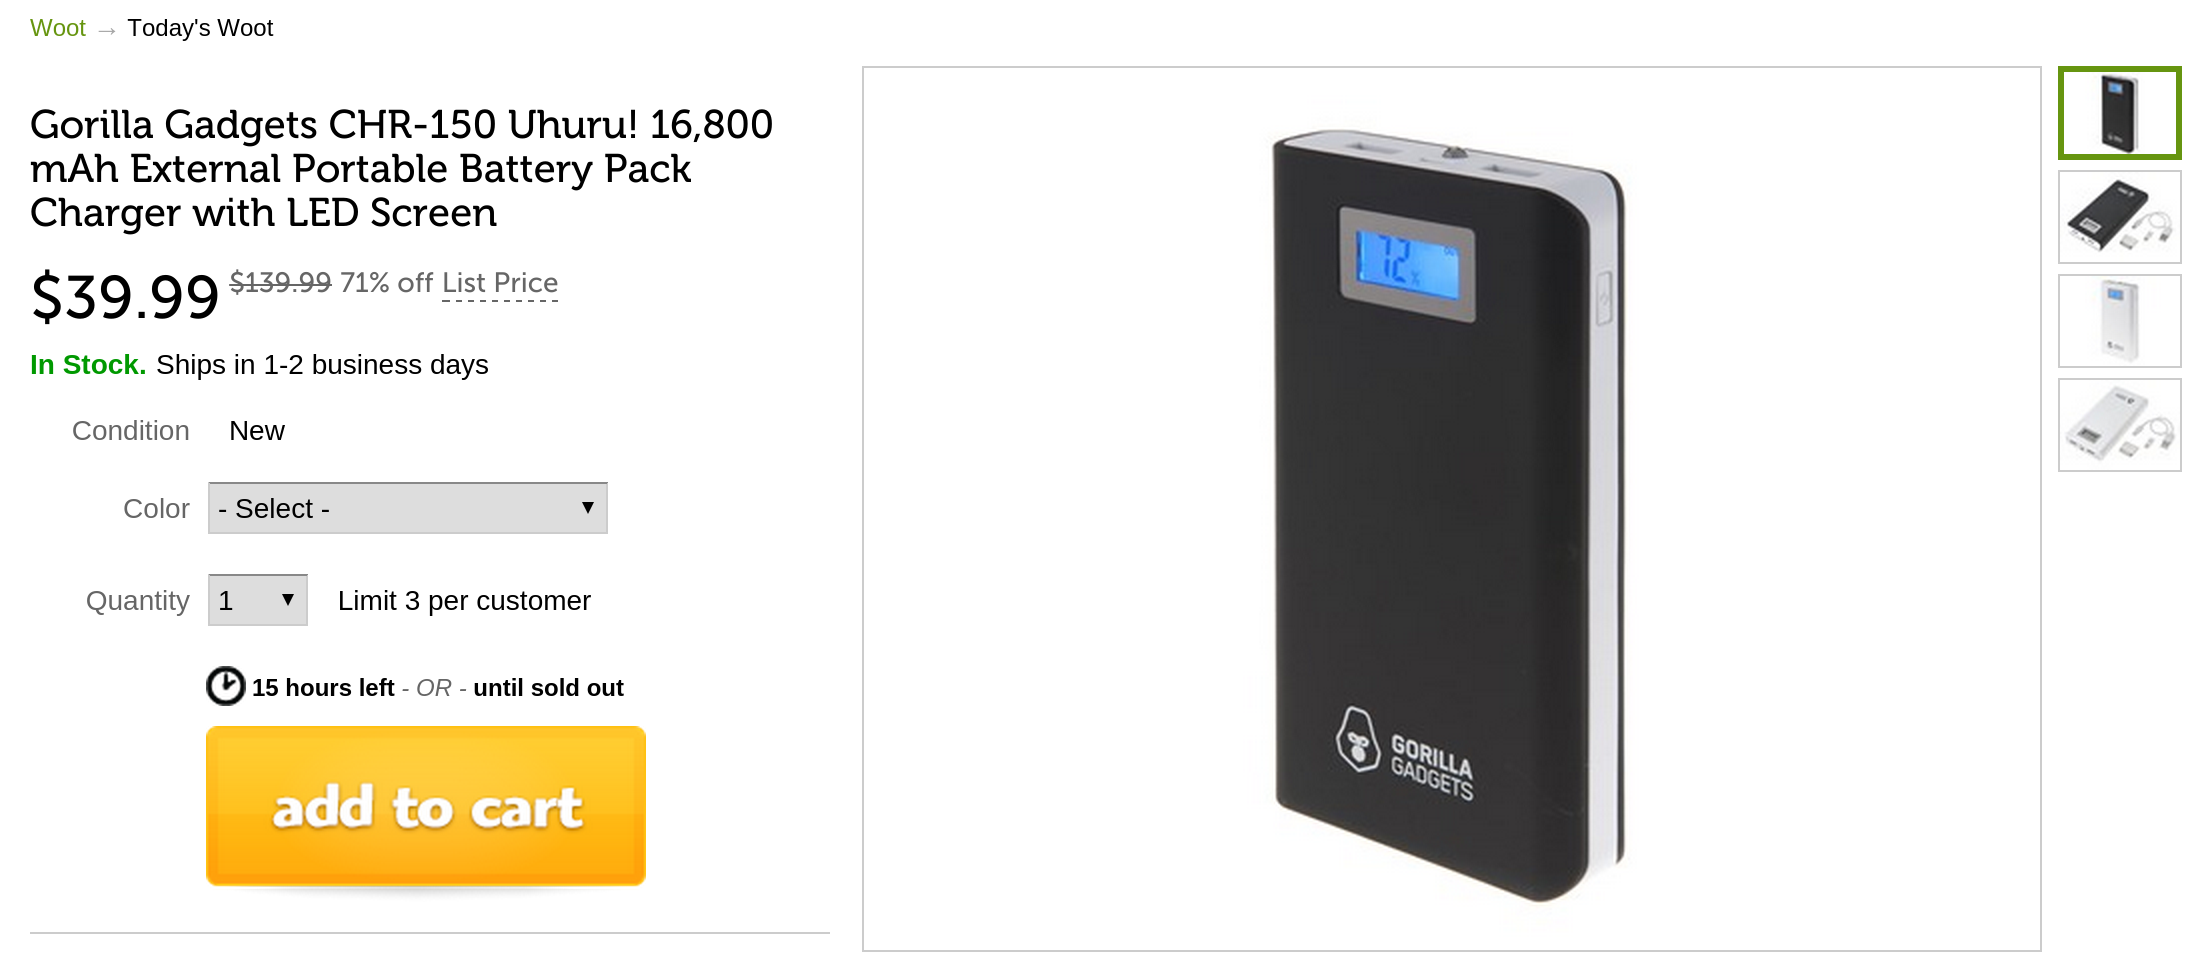 Deal Alert] Gorilla Gadgets 16,800mAh External Battery Pack With LED